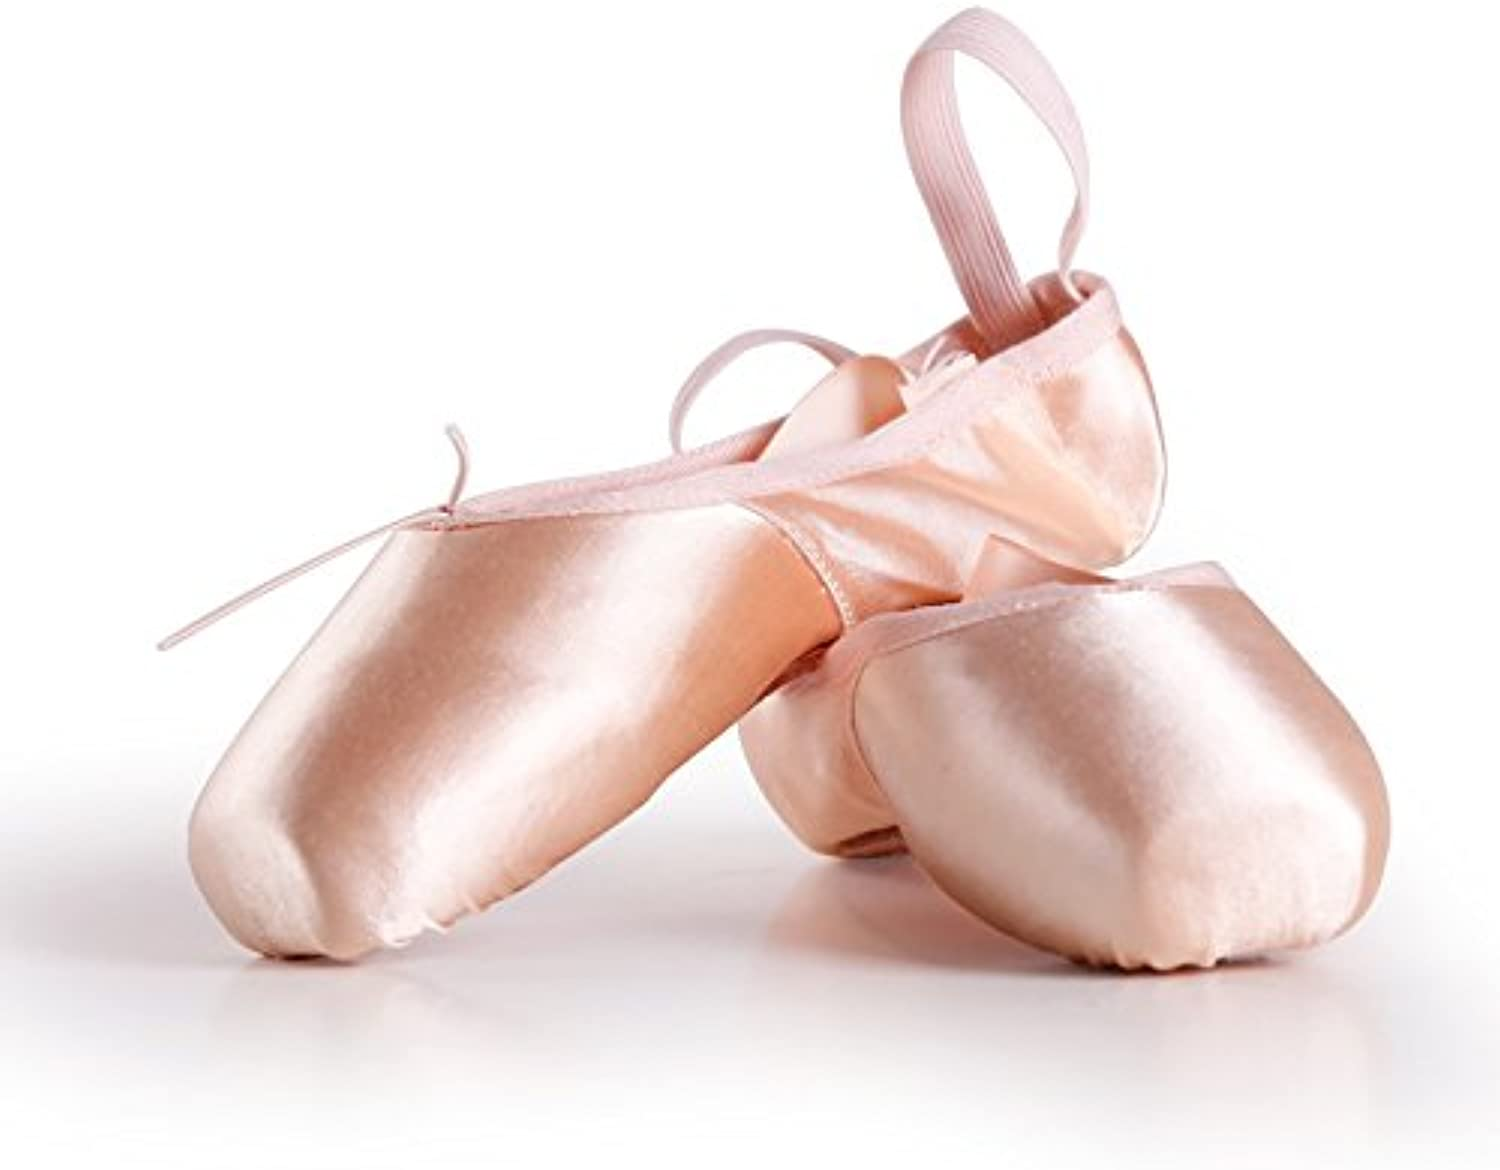 YJiaJu Professional Ballet Pointe shoes, Ballroom Satin Upper with Ribbon Pink Professional Ballet shoes for Girls Women